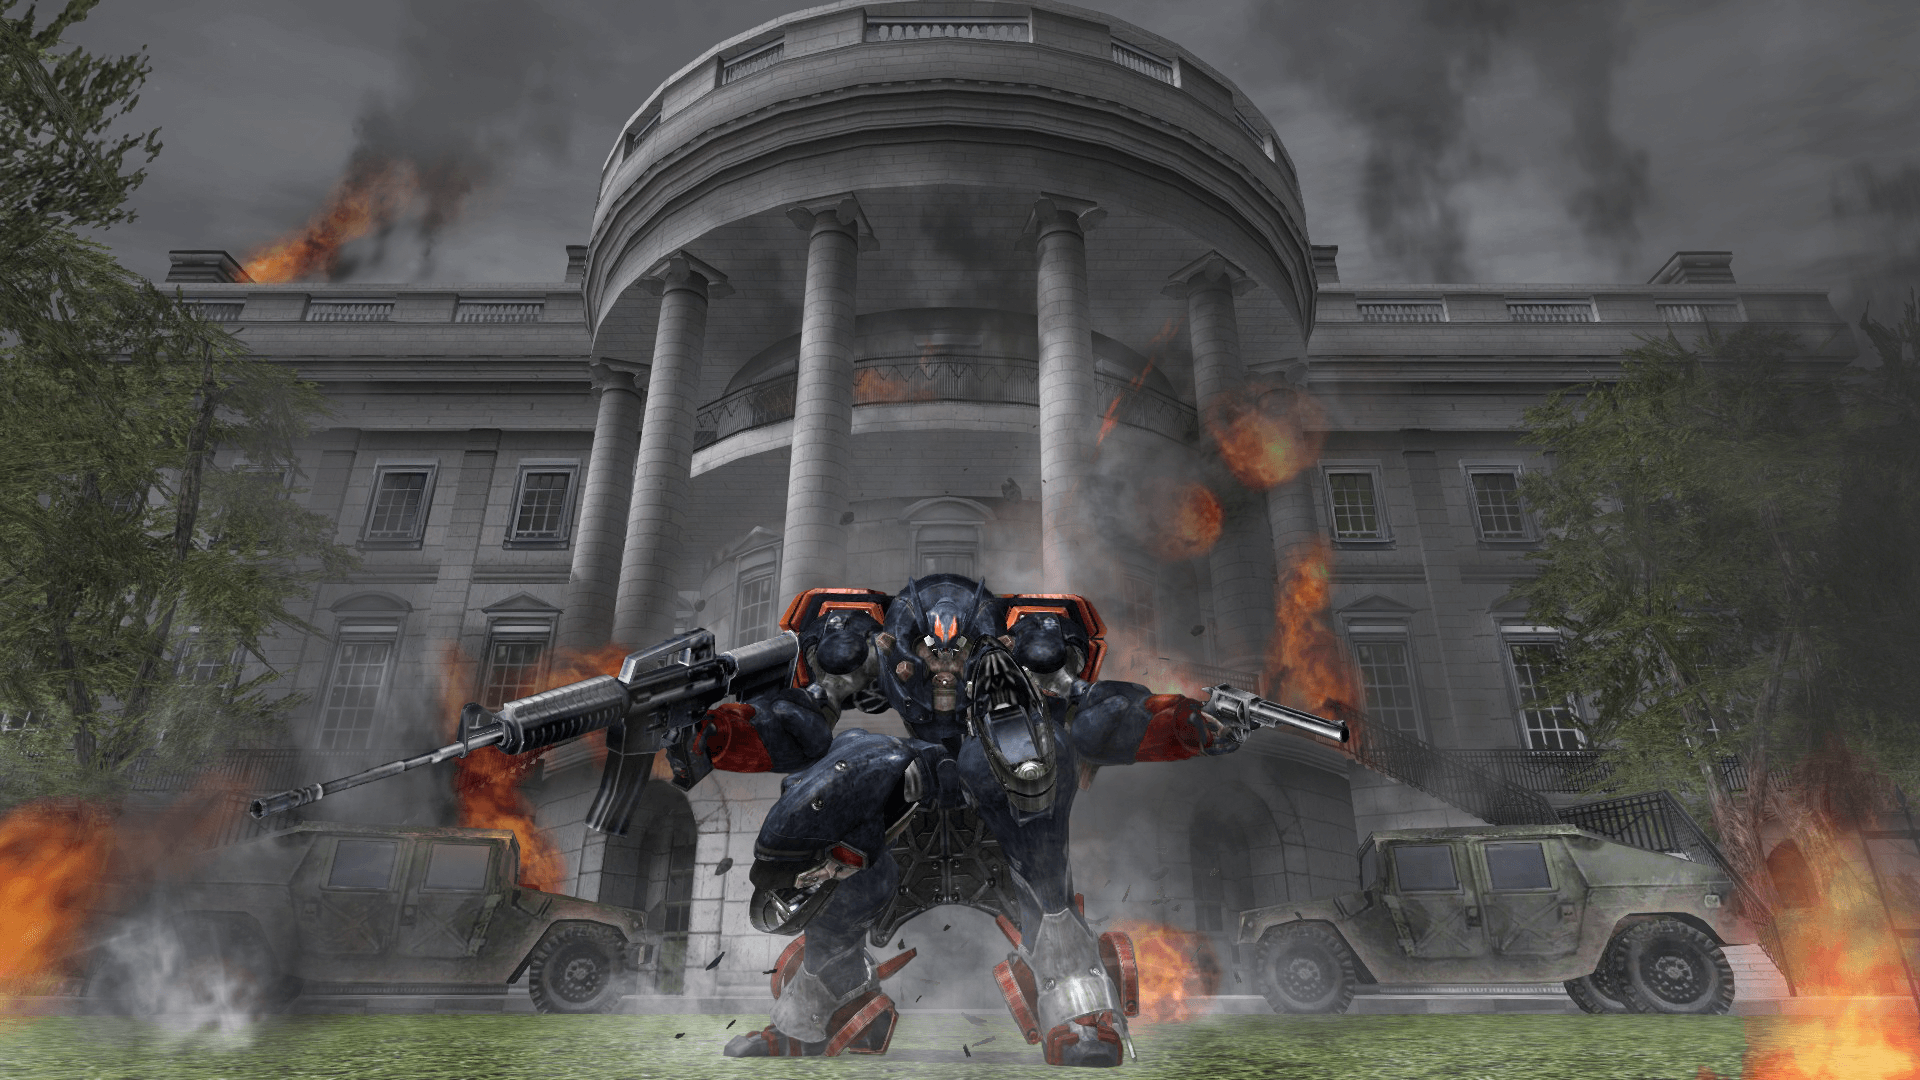 In Metal Wolf Chaos XD, the POTUS travels around the U.S. in Air Force One and fights off a villainous coup by the Vice President in an effort to restore democracy to the United States. (Screenshot courtesy Devolver Digital via cosmocover.com)